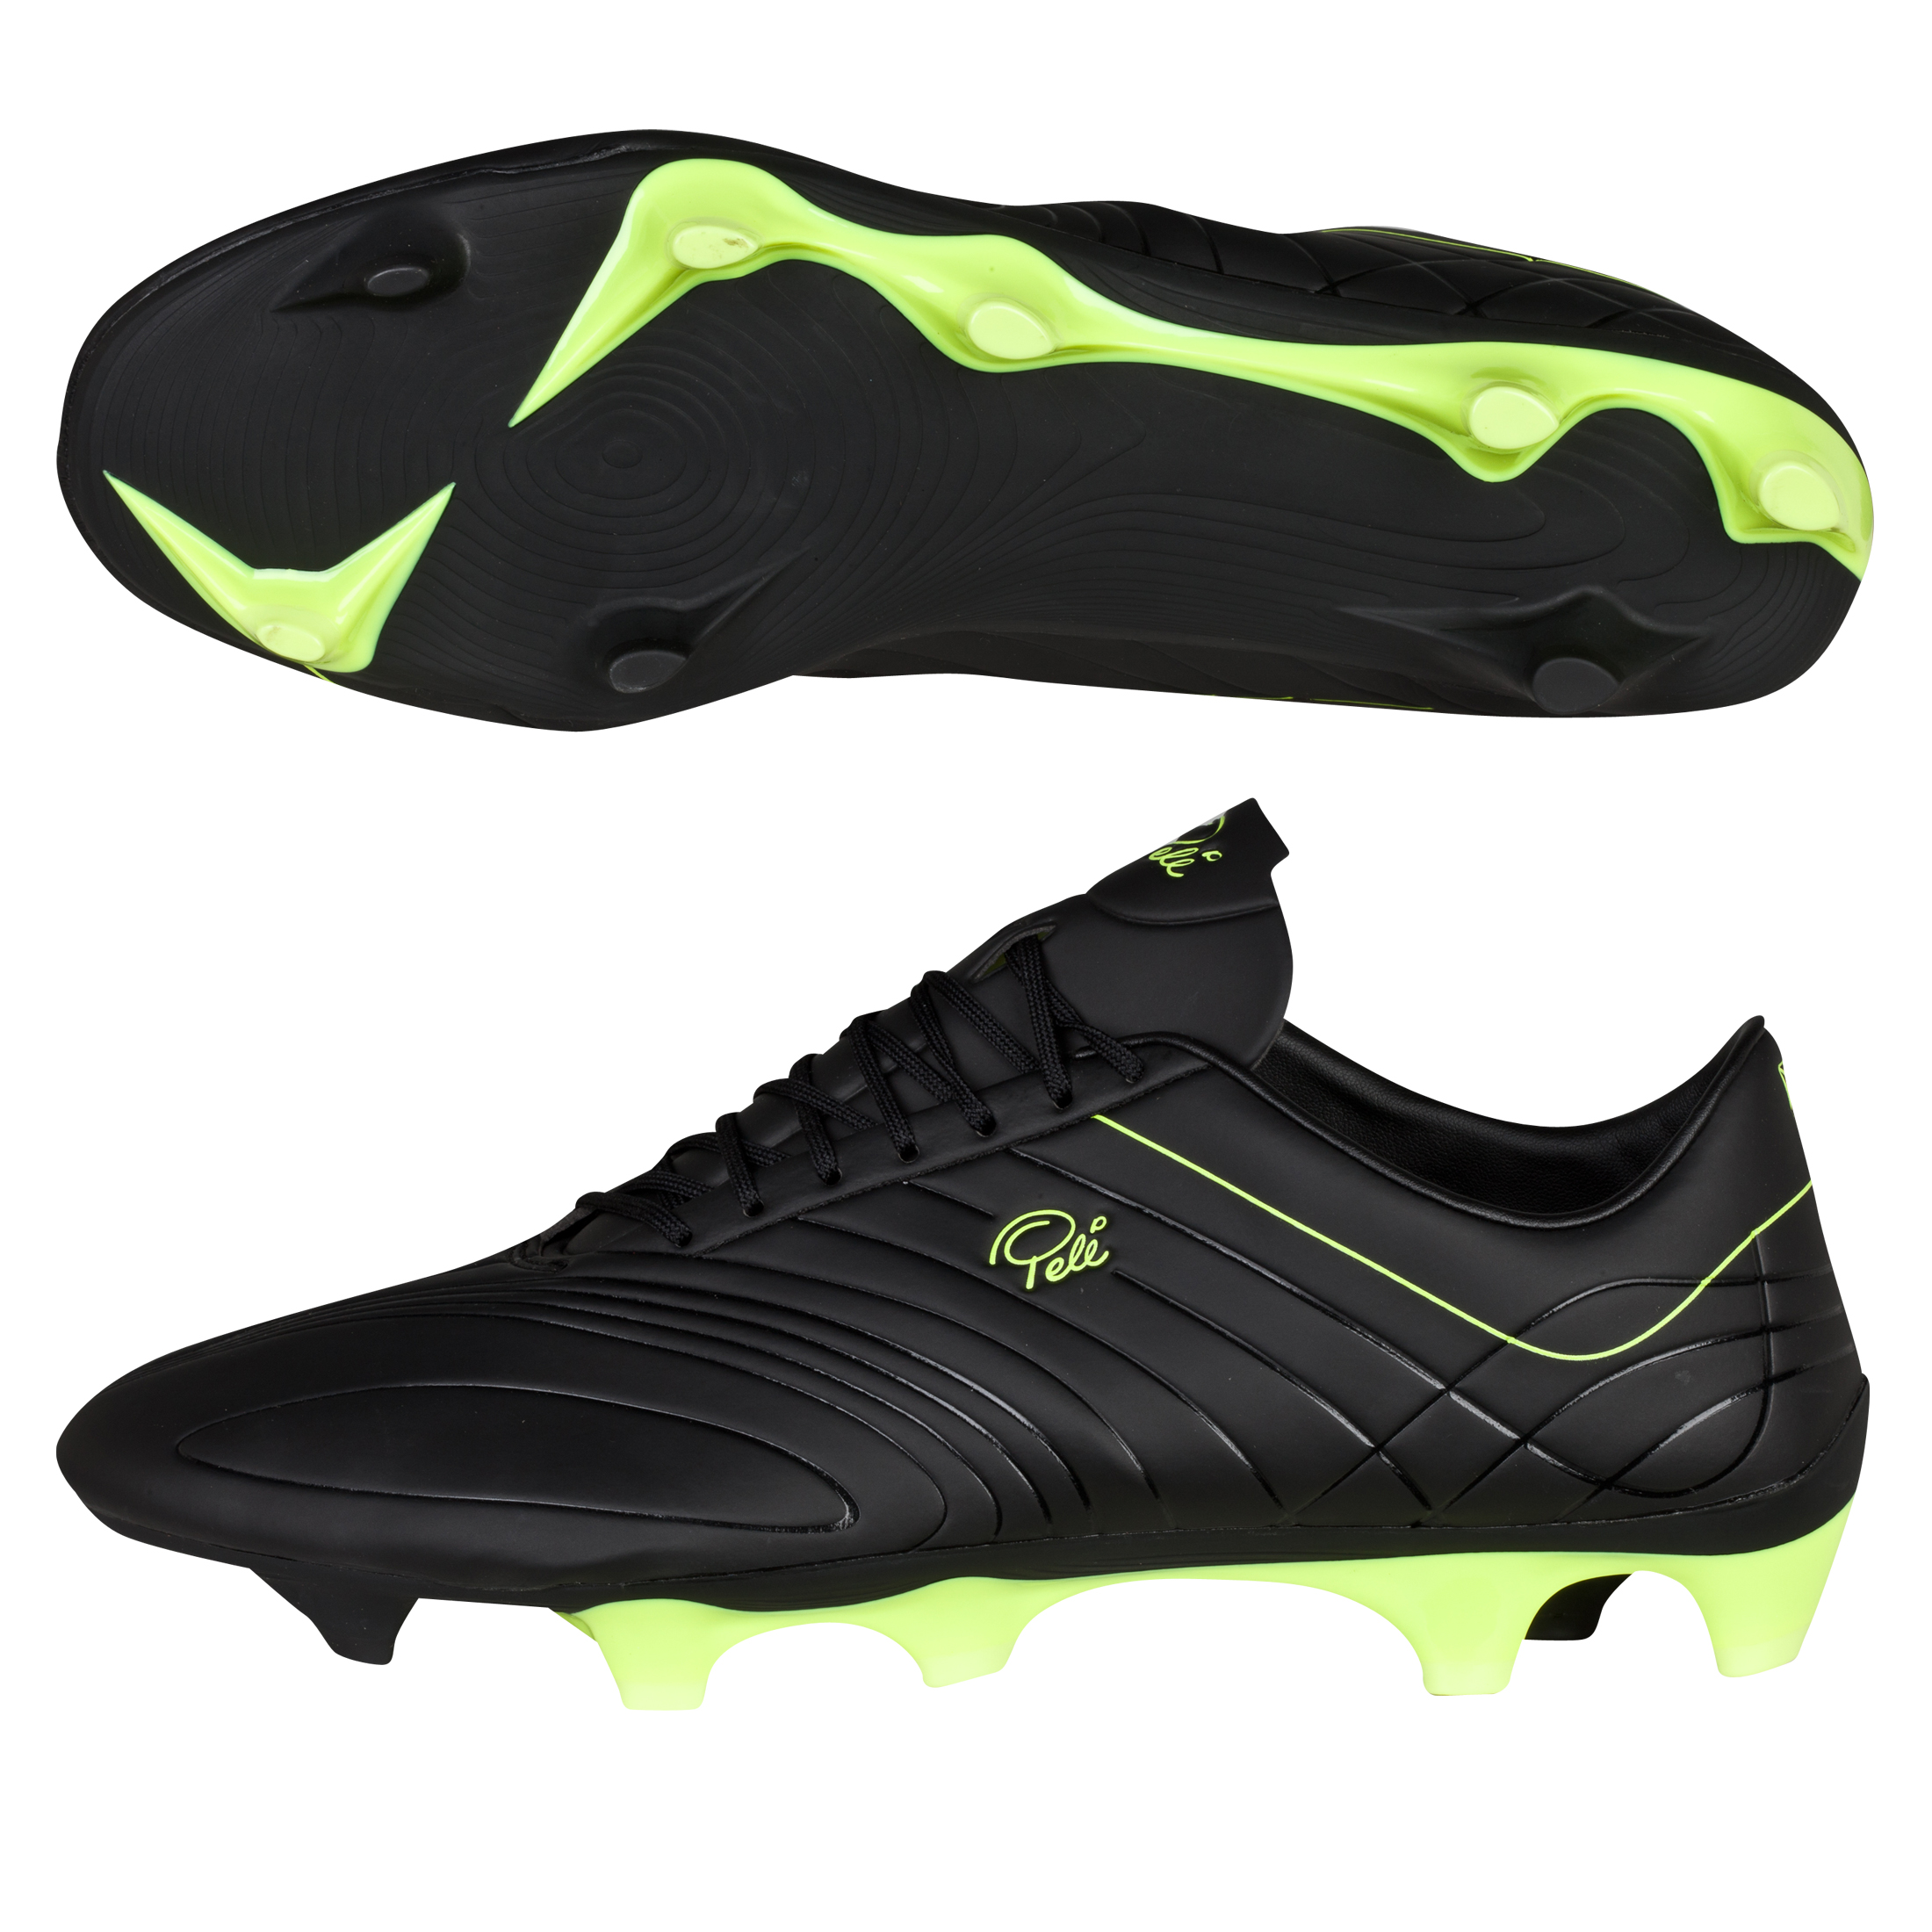 Pele Sports Trinity 3E Firm Ground Football Boots - Black/Neon Yellow